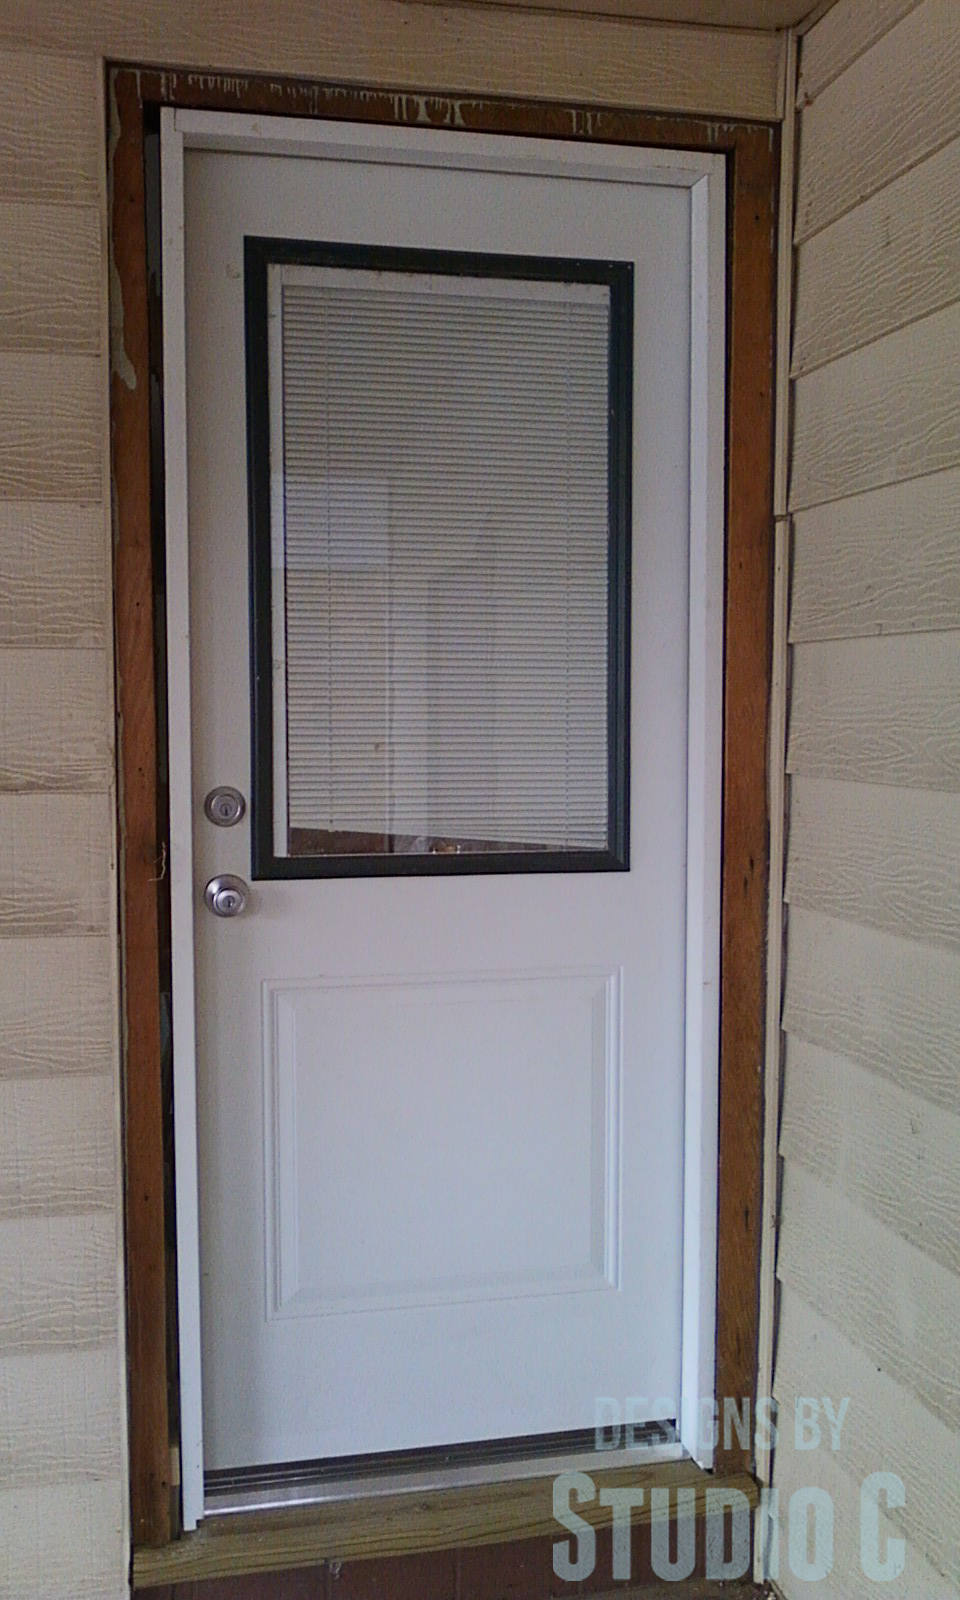 Replacing An Exterior Door Designs By Studio C